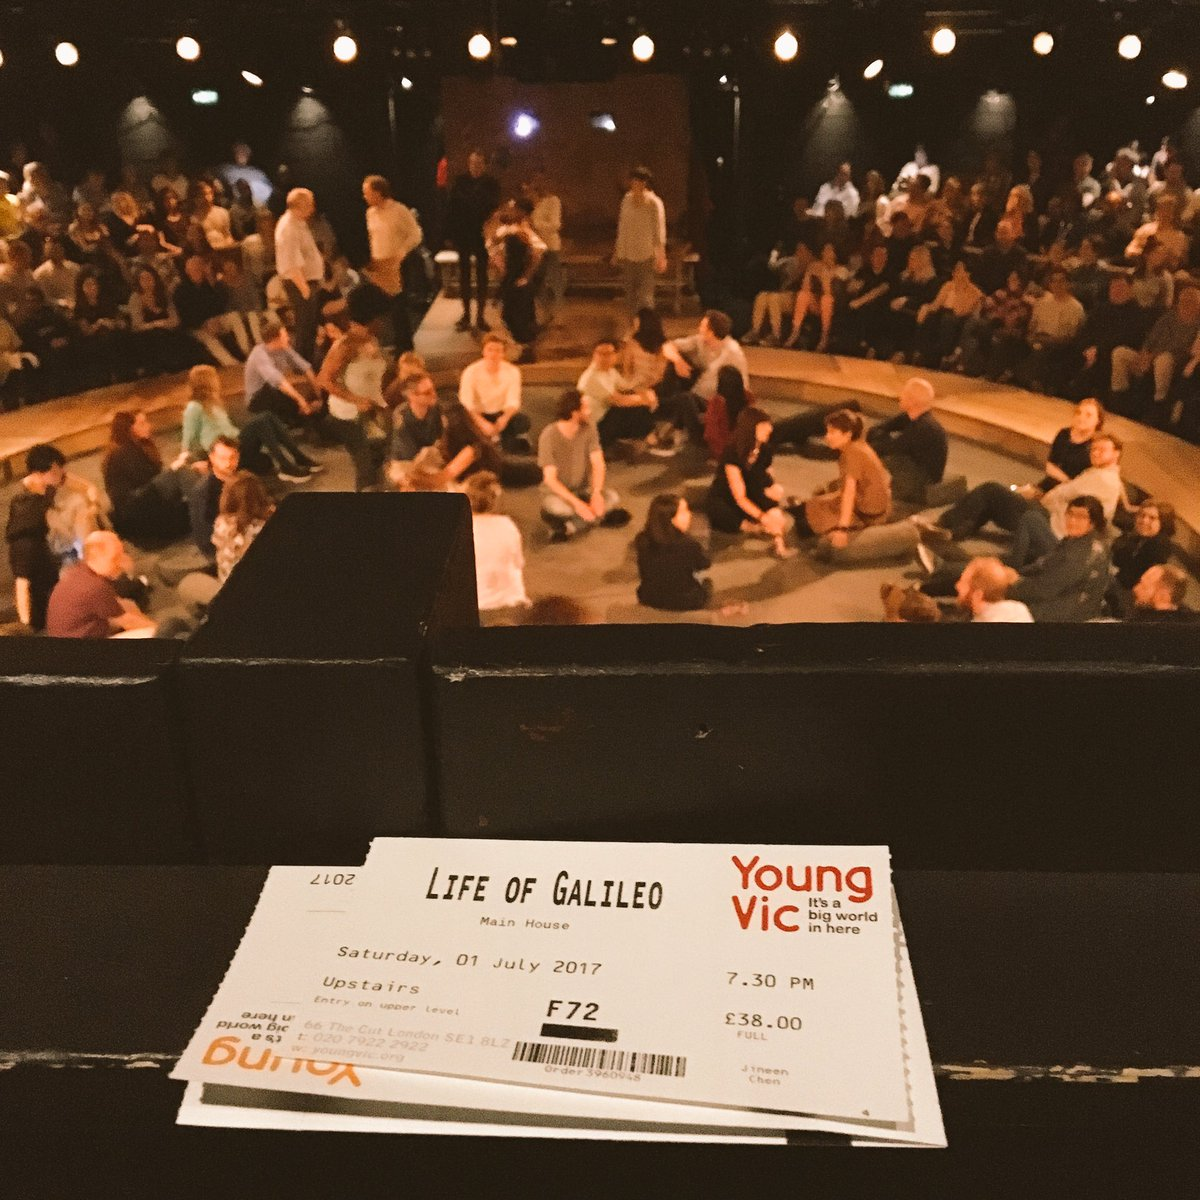 Got to see the last performance of #LifeofGalileo @youngvictheatre Marvelous cast and stunning set and sound. Fell in love with science.<br>http://pic.twitter.com/0vO2aBQBZJ